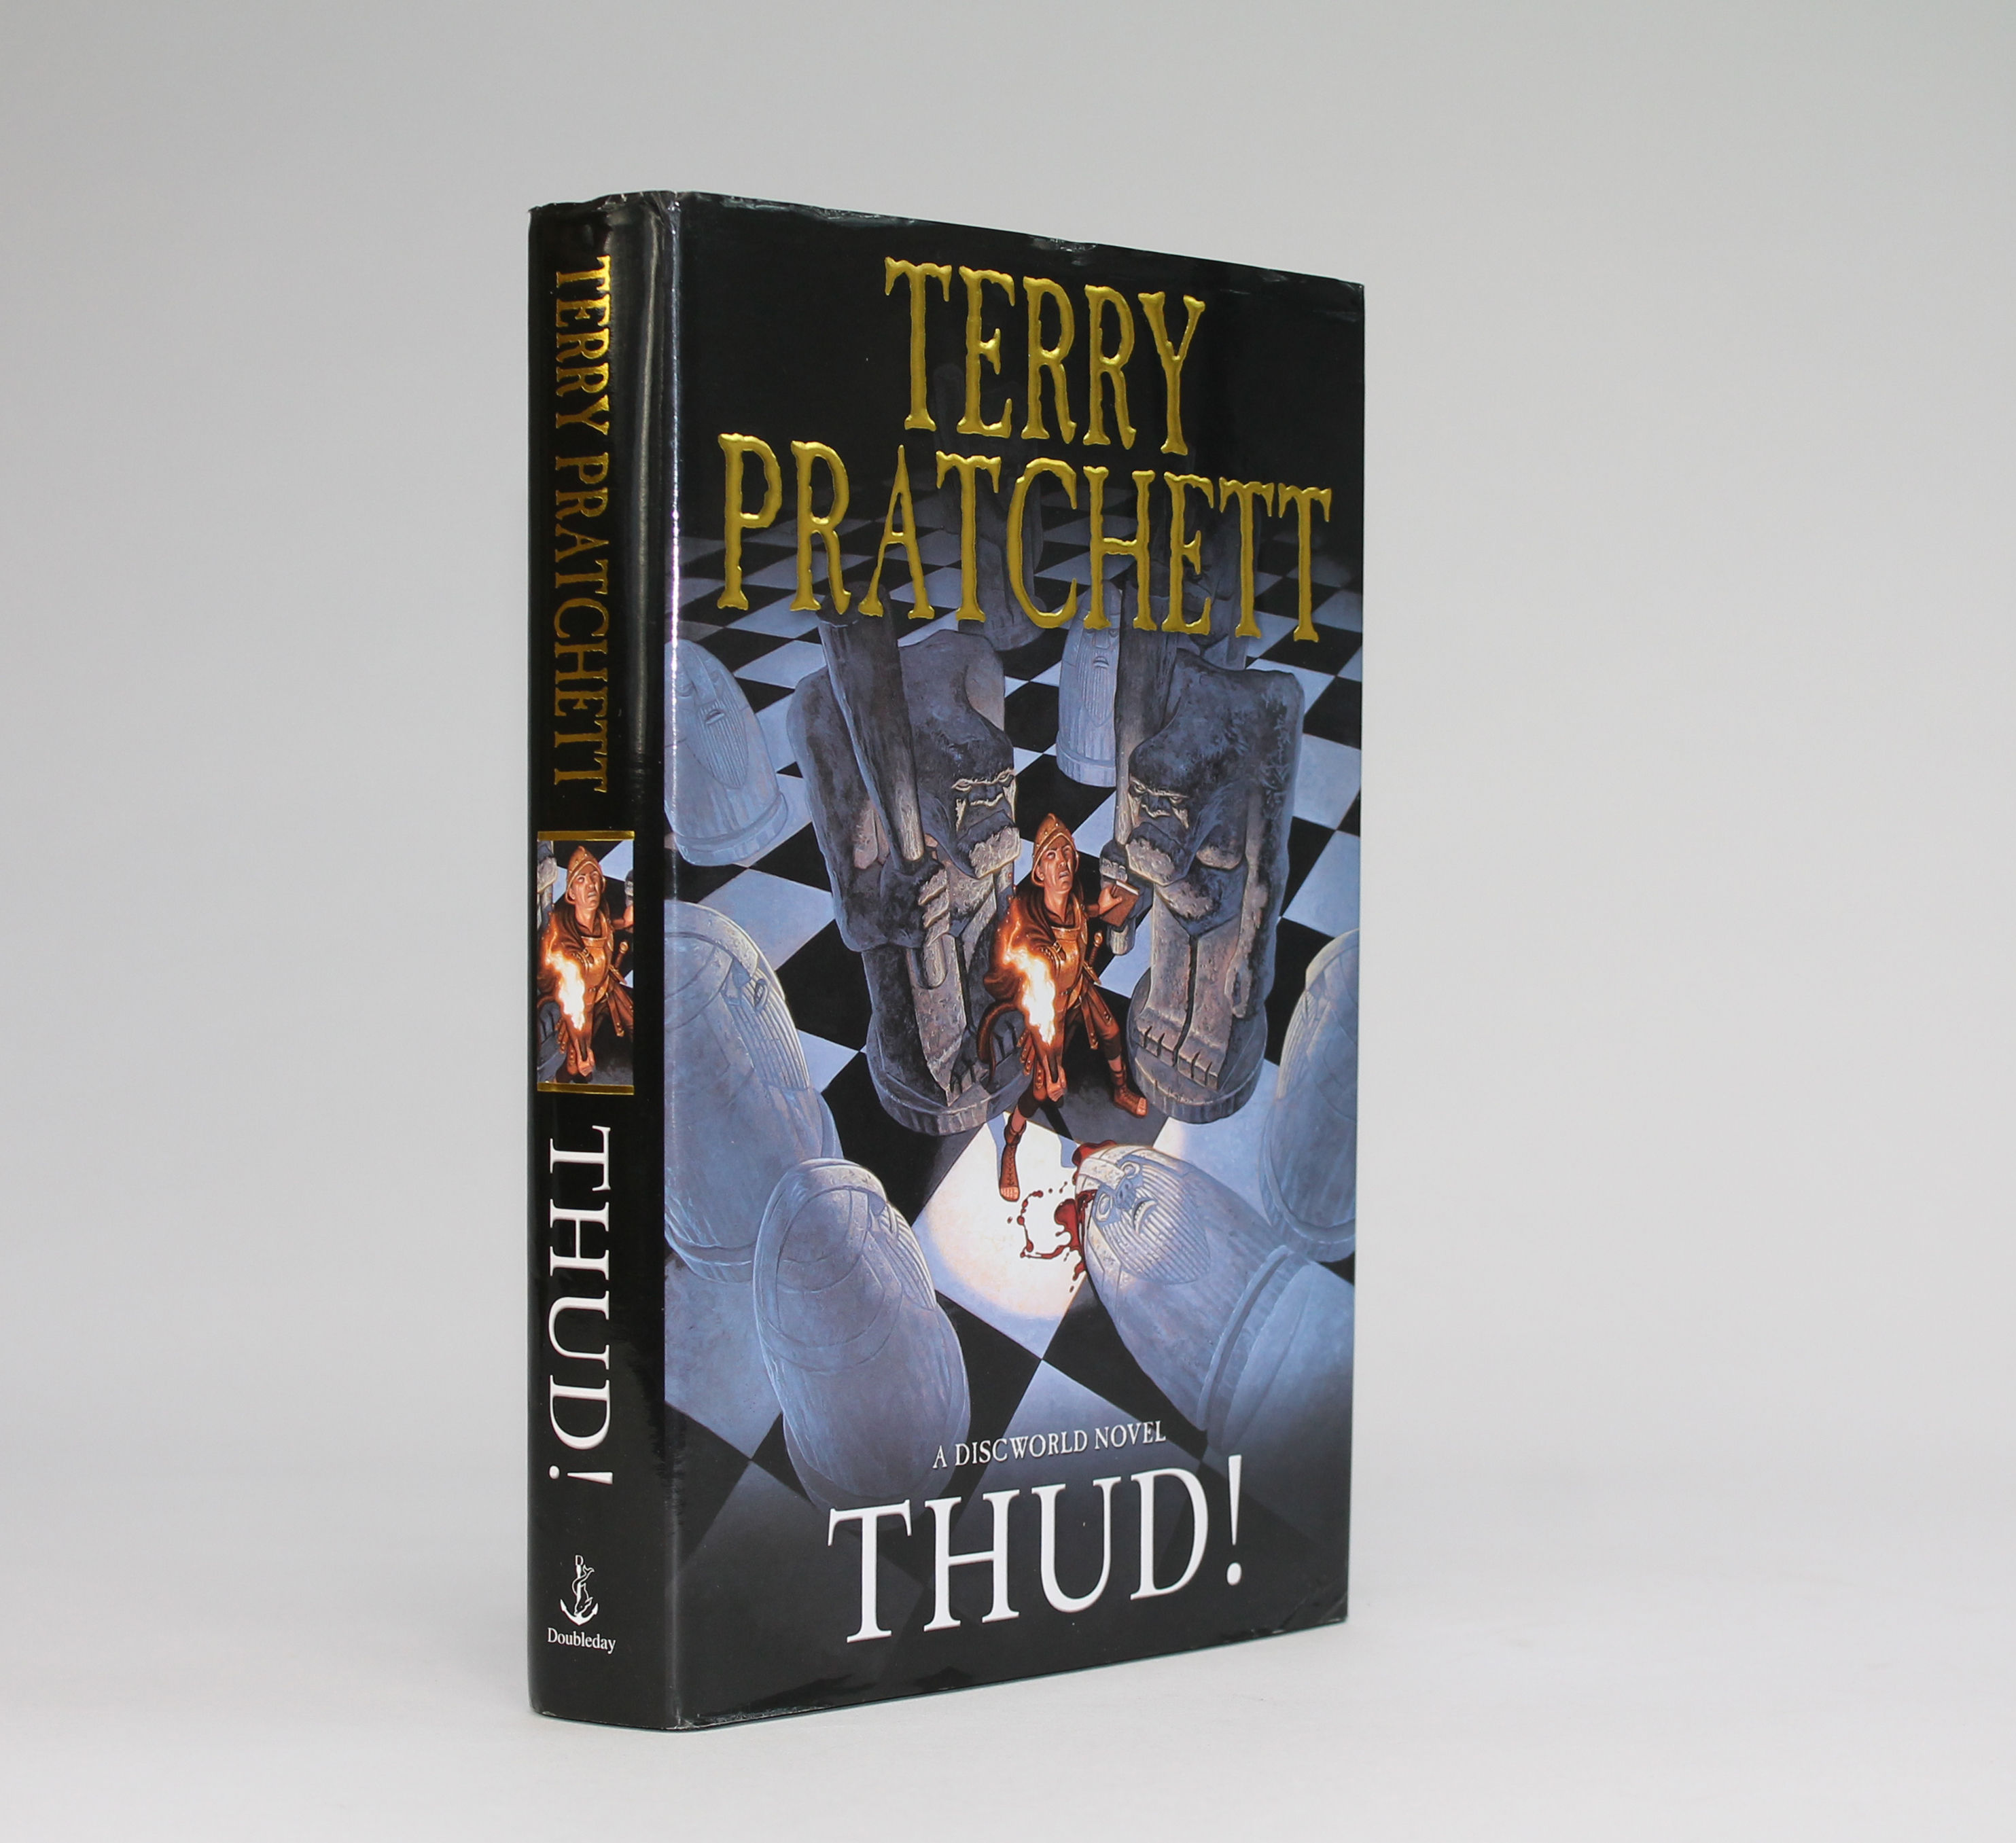 thud terry pratchett essay Pratchett's women vi: pole dancers, goblin girls, and the family man in thud and snuff pratchett's women vii: a wonderful personality and good hair – agnes nitt maskerade and carpe jugulum pratchett's women viii: has scythe, will teach school – susan sto helit in soul music , hogfather & thief of time.